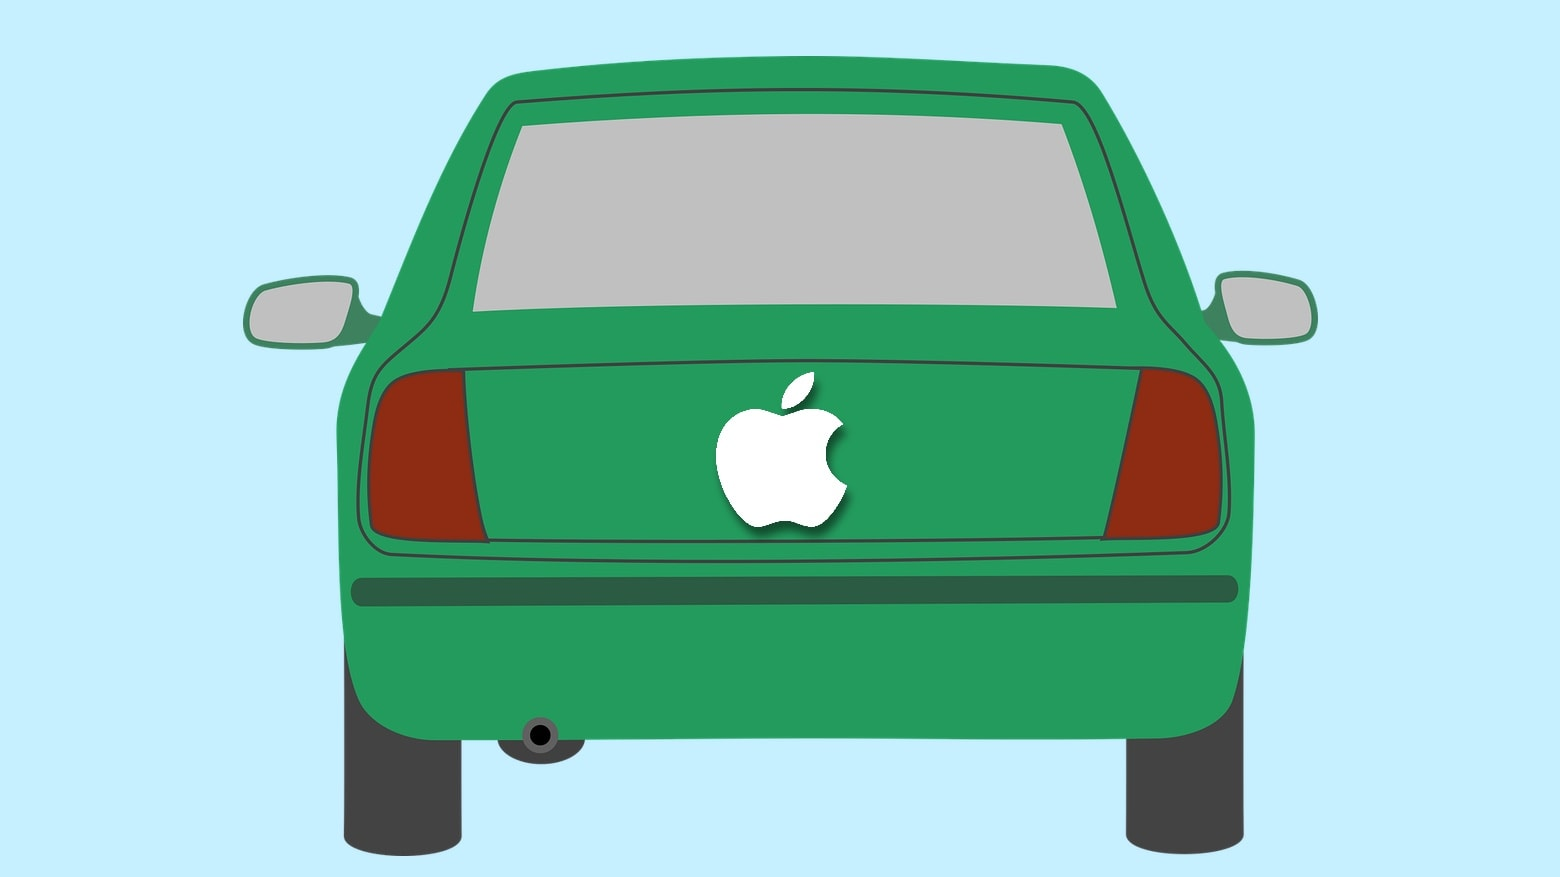 Apple Car might not drive off the lot before 2028